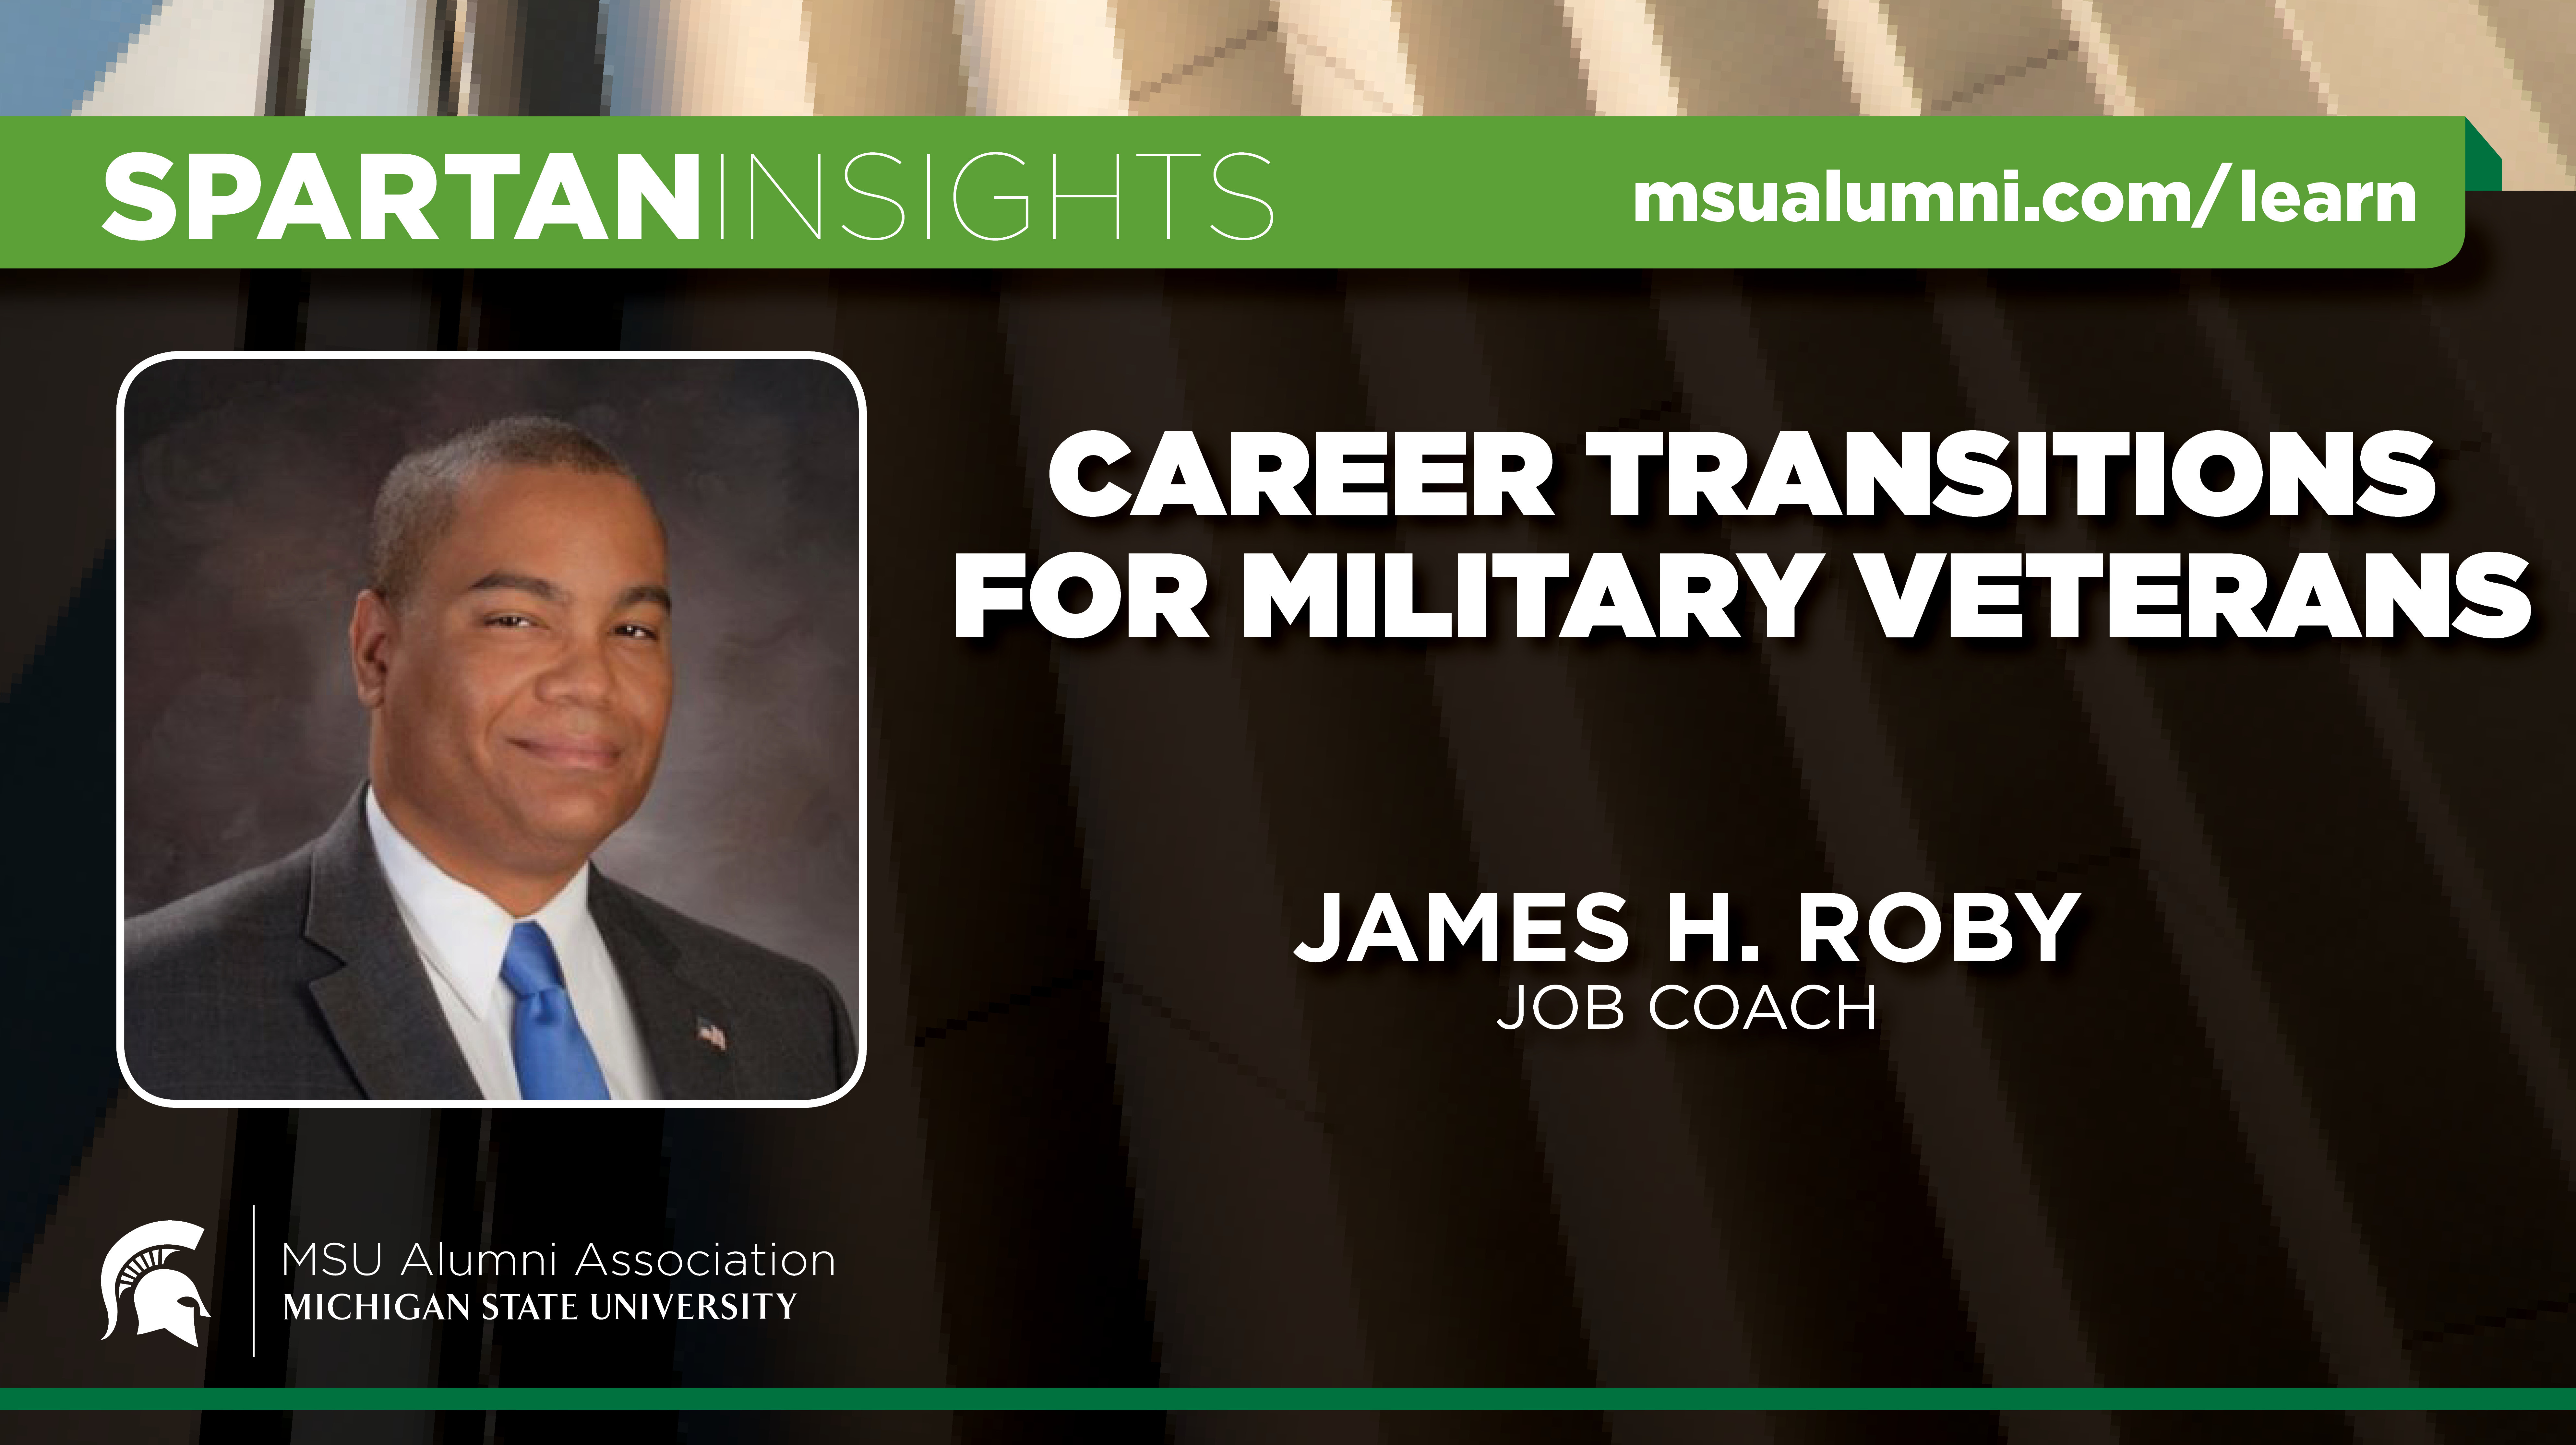 webinar cover image for James H. Roby | Career Transitions For Military Veterans